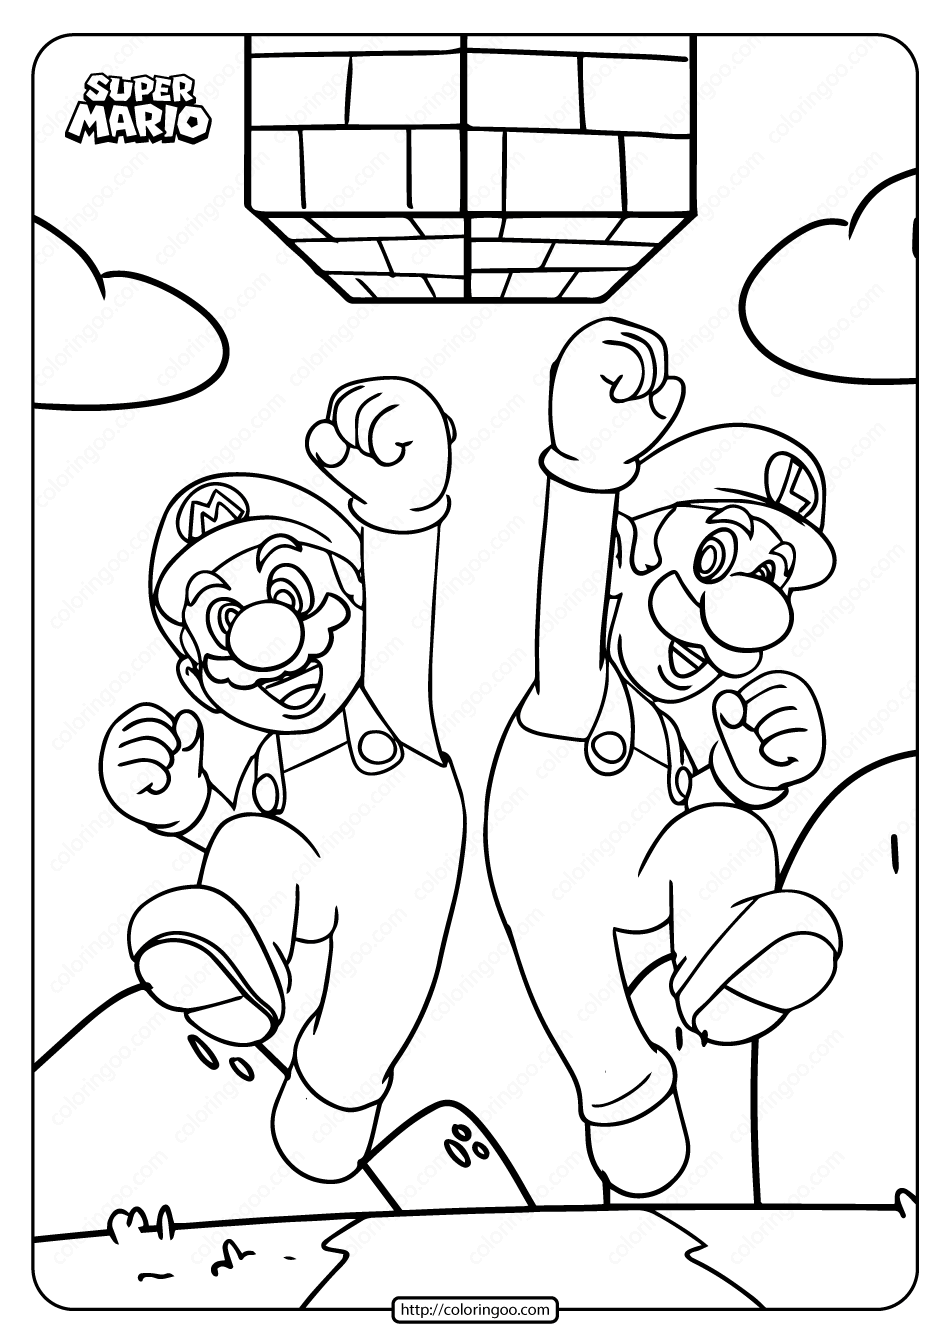 Printable Super Mario Bros Pdf Coloring Page